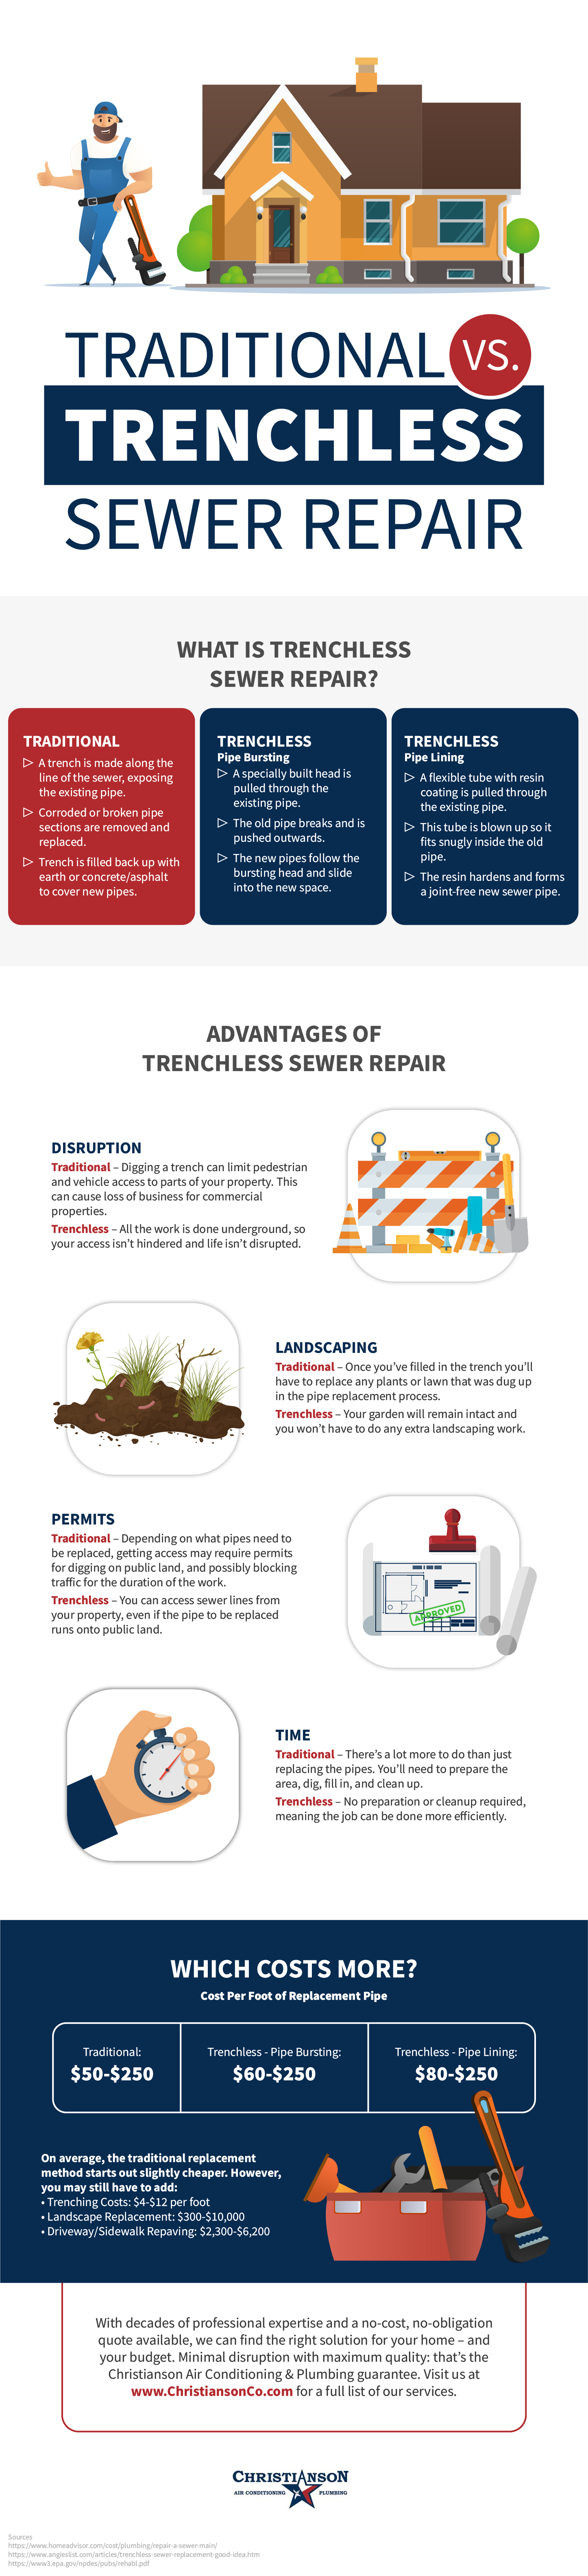 Traditional vs. Trenchless Sewer Repair Infographic